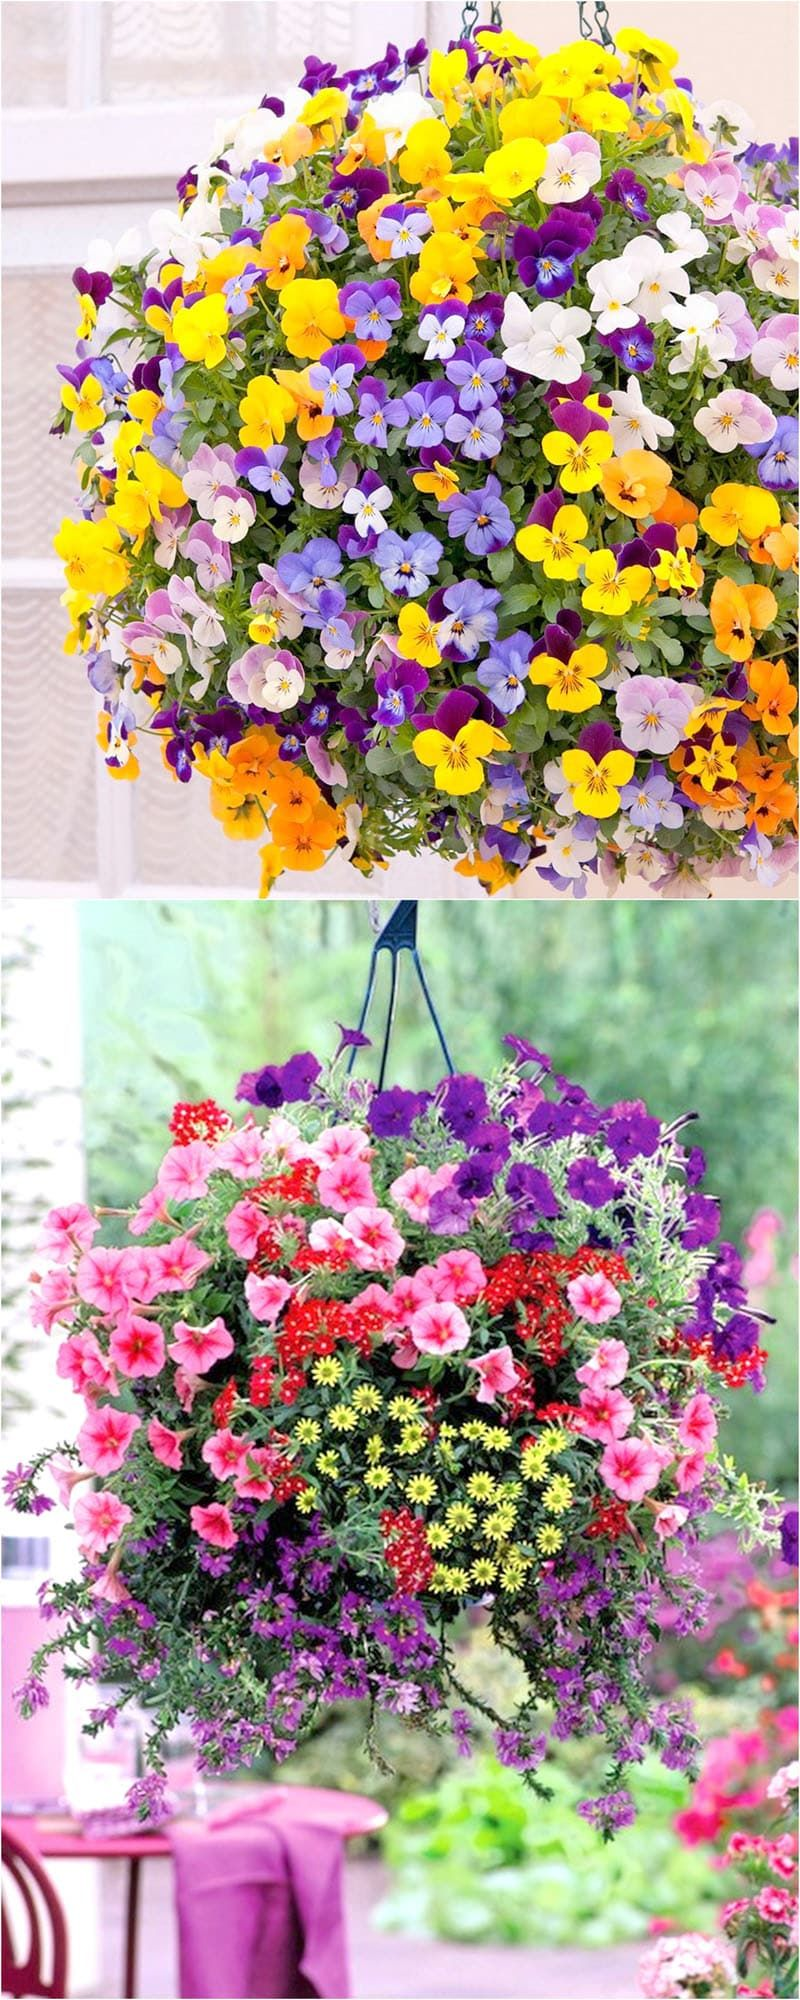 15 Beautiful Flower Hanging Baskets & Best Plant Lists